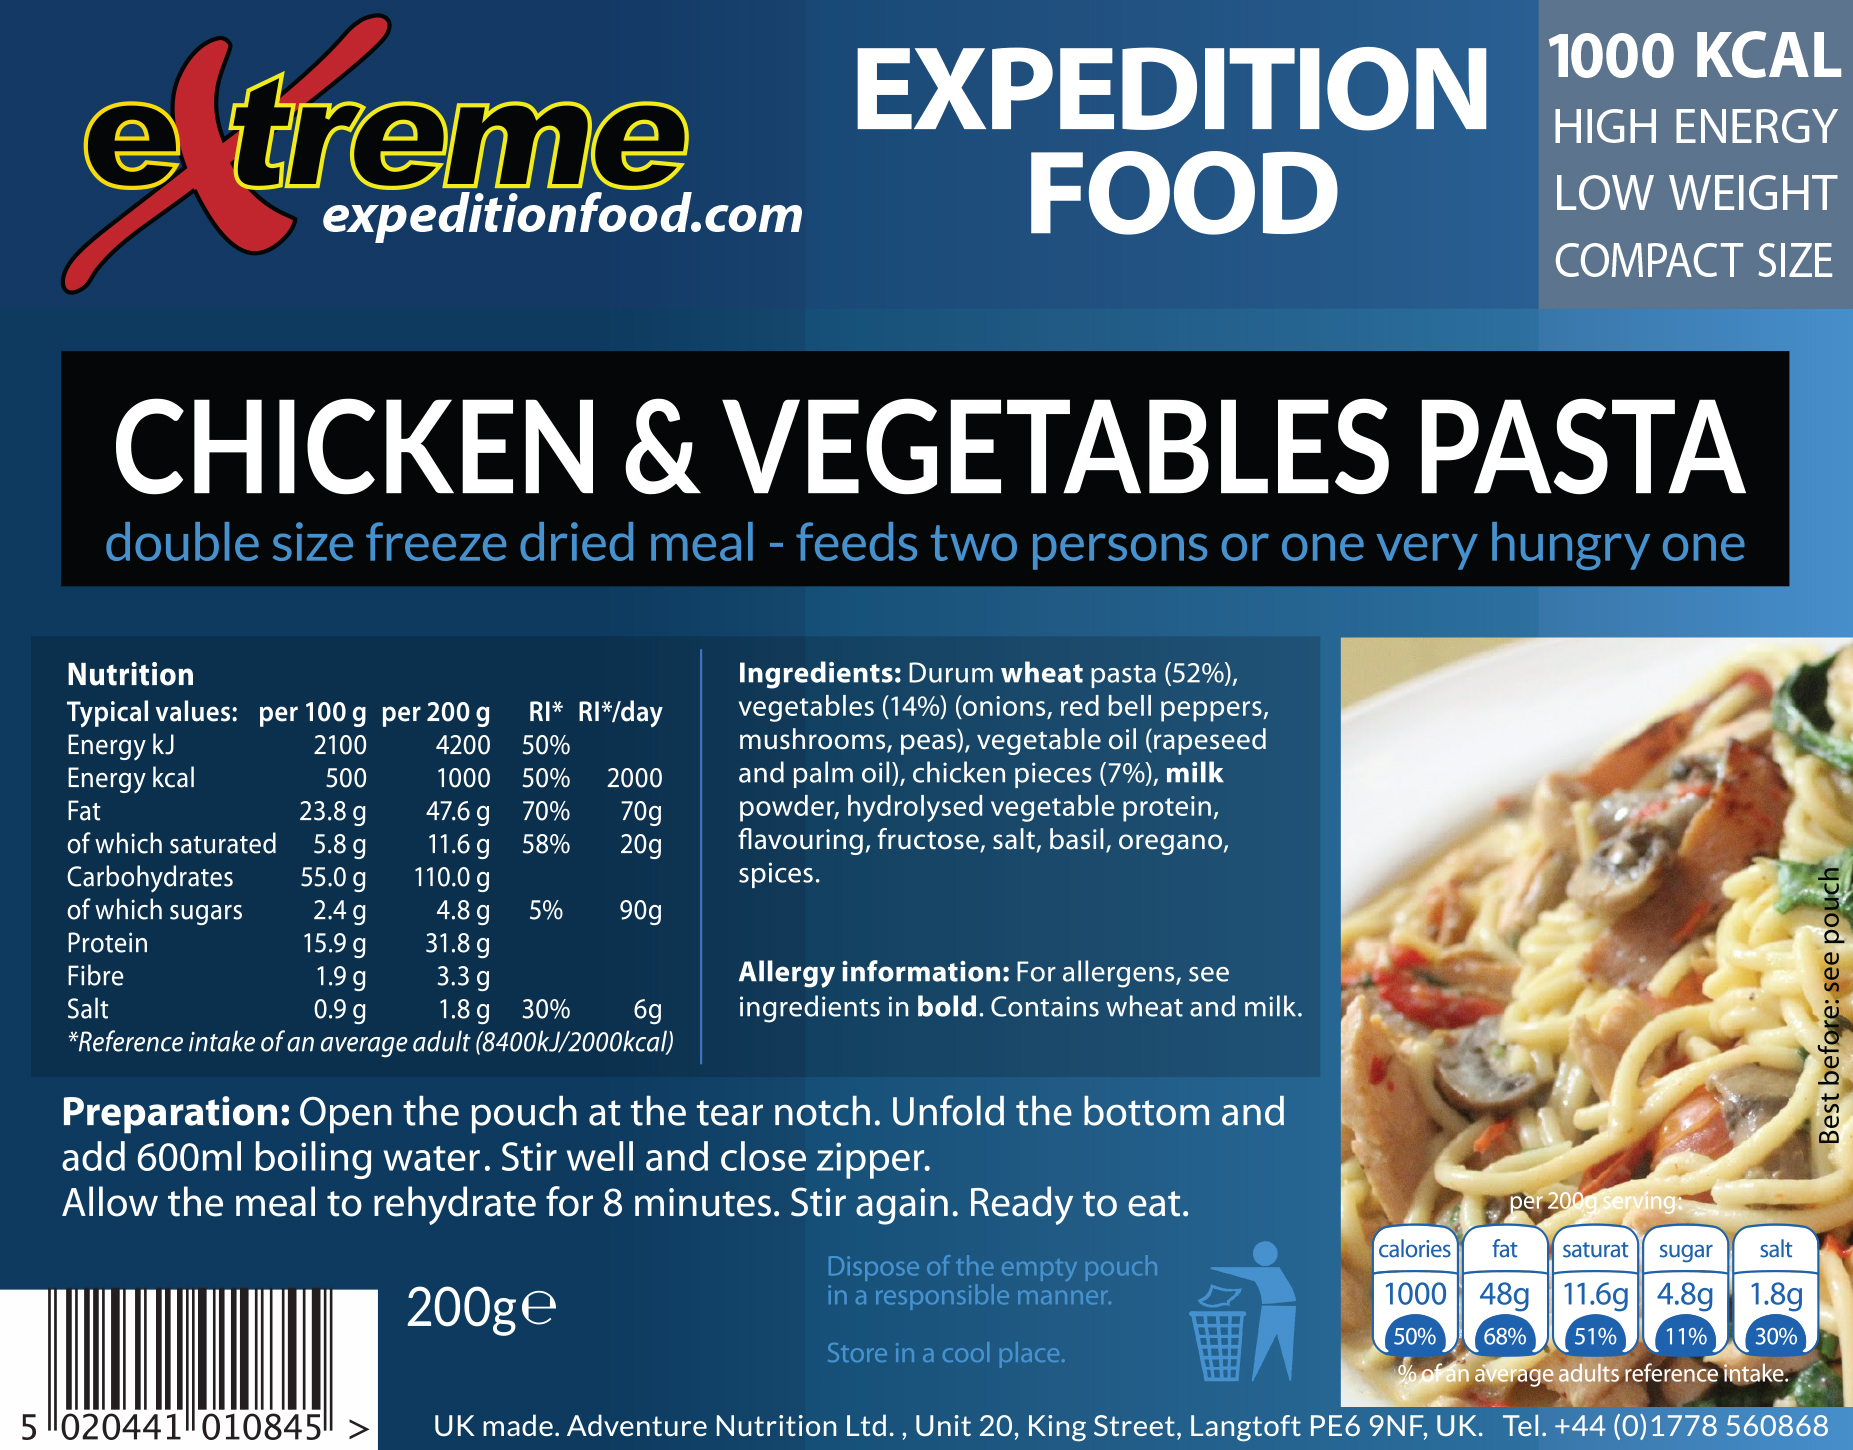 Extreme Expedition Food 1000 Kcal Chicken & vegetables pasta